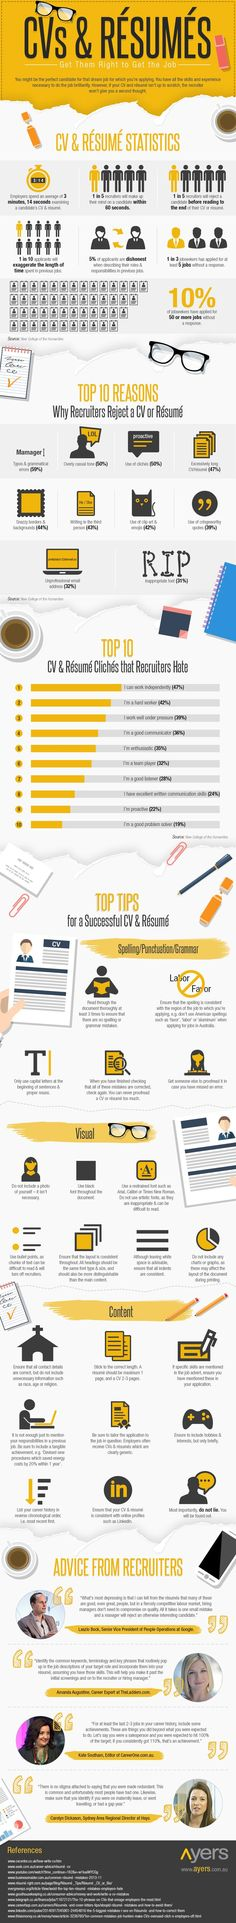 infographic CVs & Resumes: Get Them Right to Get the Job . Image Description CVs & Resumes: Get Them Right to Get the Job Resume Advice, Resume Writing Tips, Job Resume, Career Advice, Sample Resume, Career Help, Resume Format, Cv Web, Portfolio Web